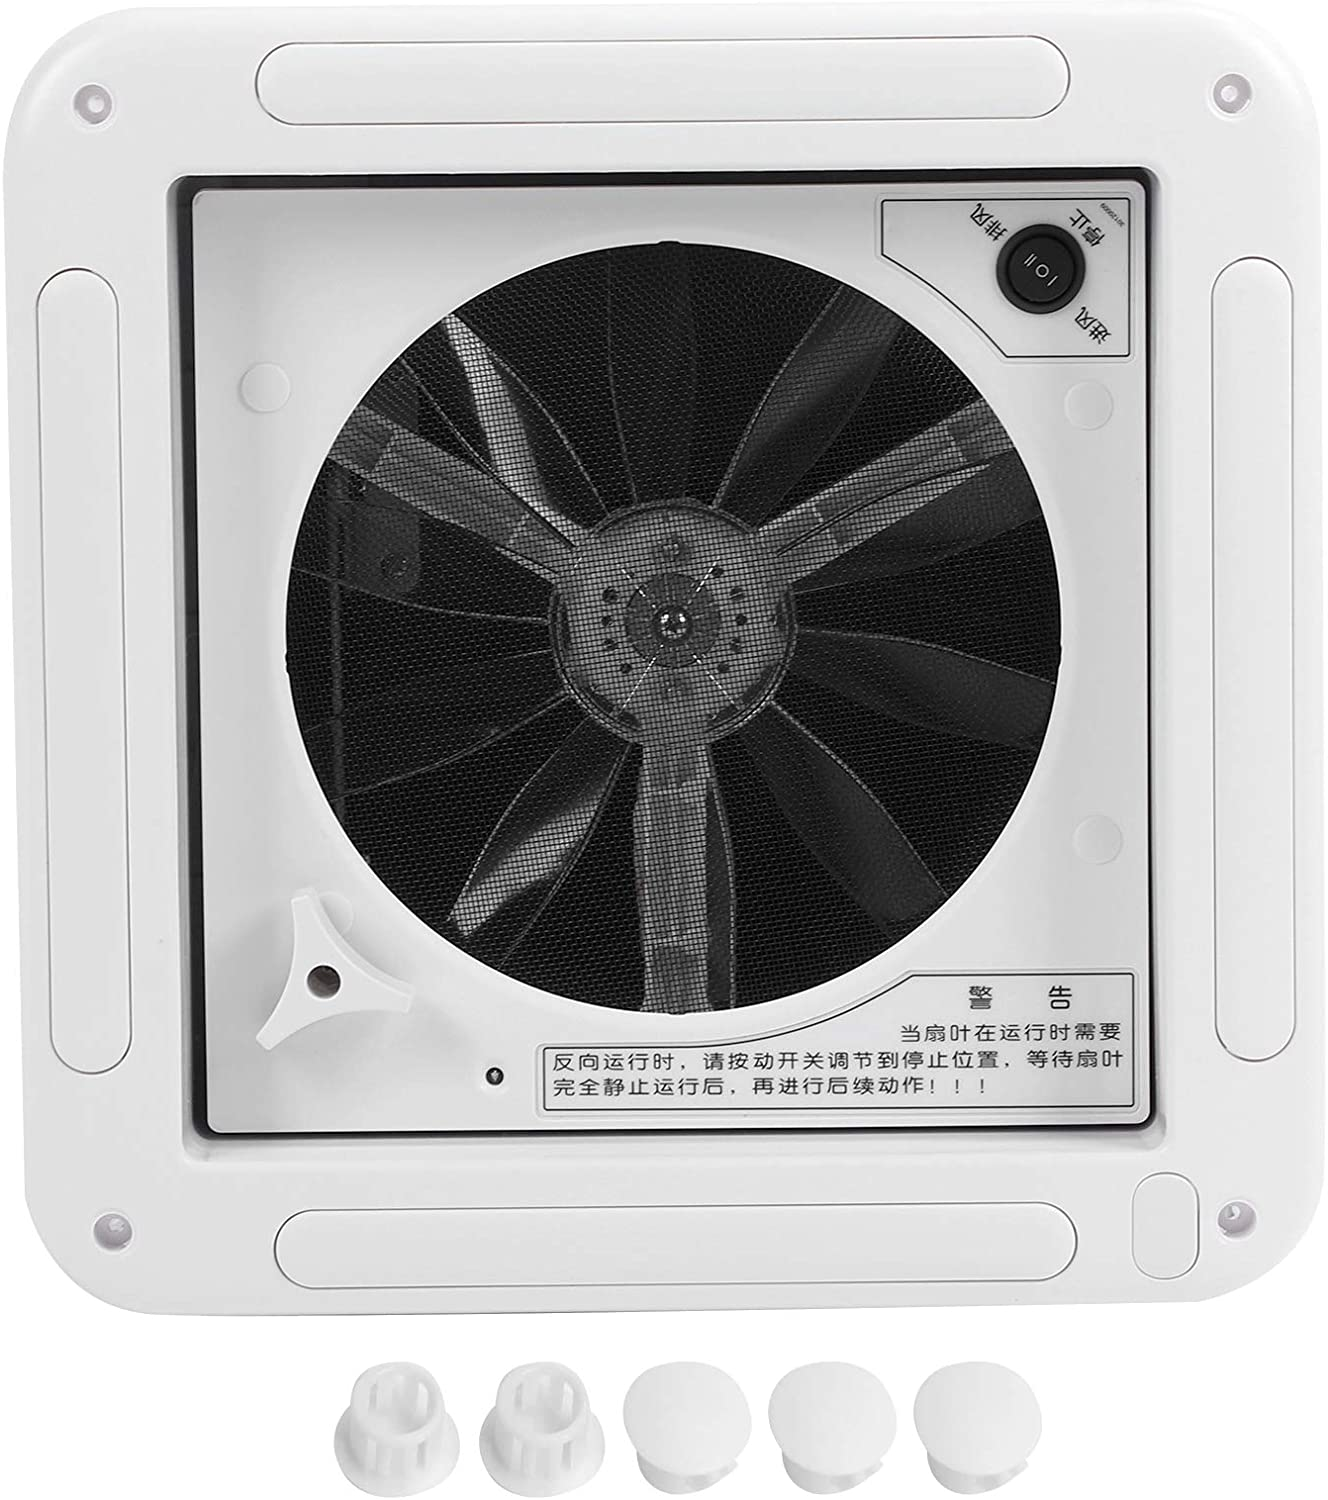 Yctze 280x280mm Limited price sale 11x11in Exhaust Washington Mall Toilet 12V Fan Top‑Mounted